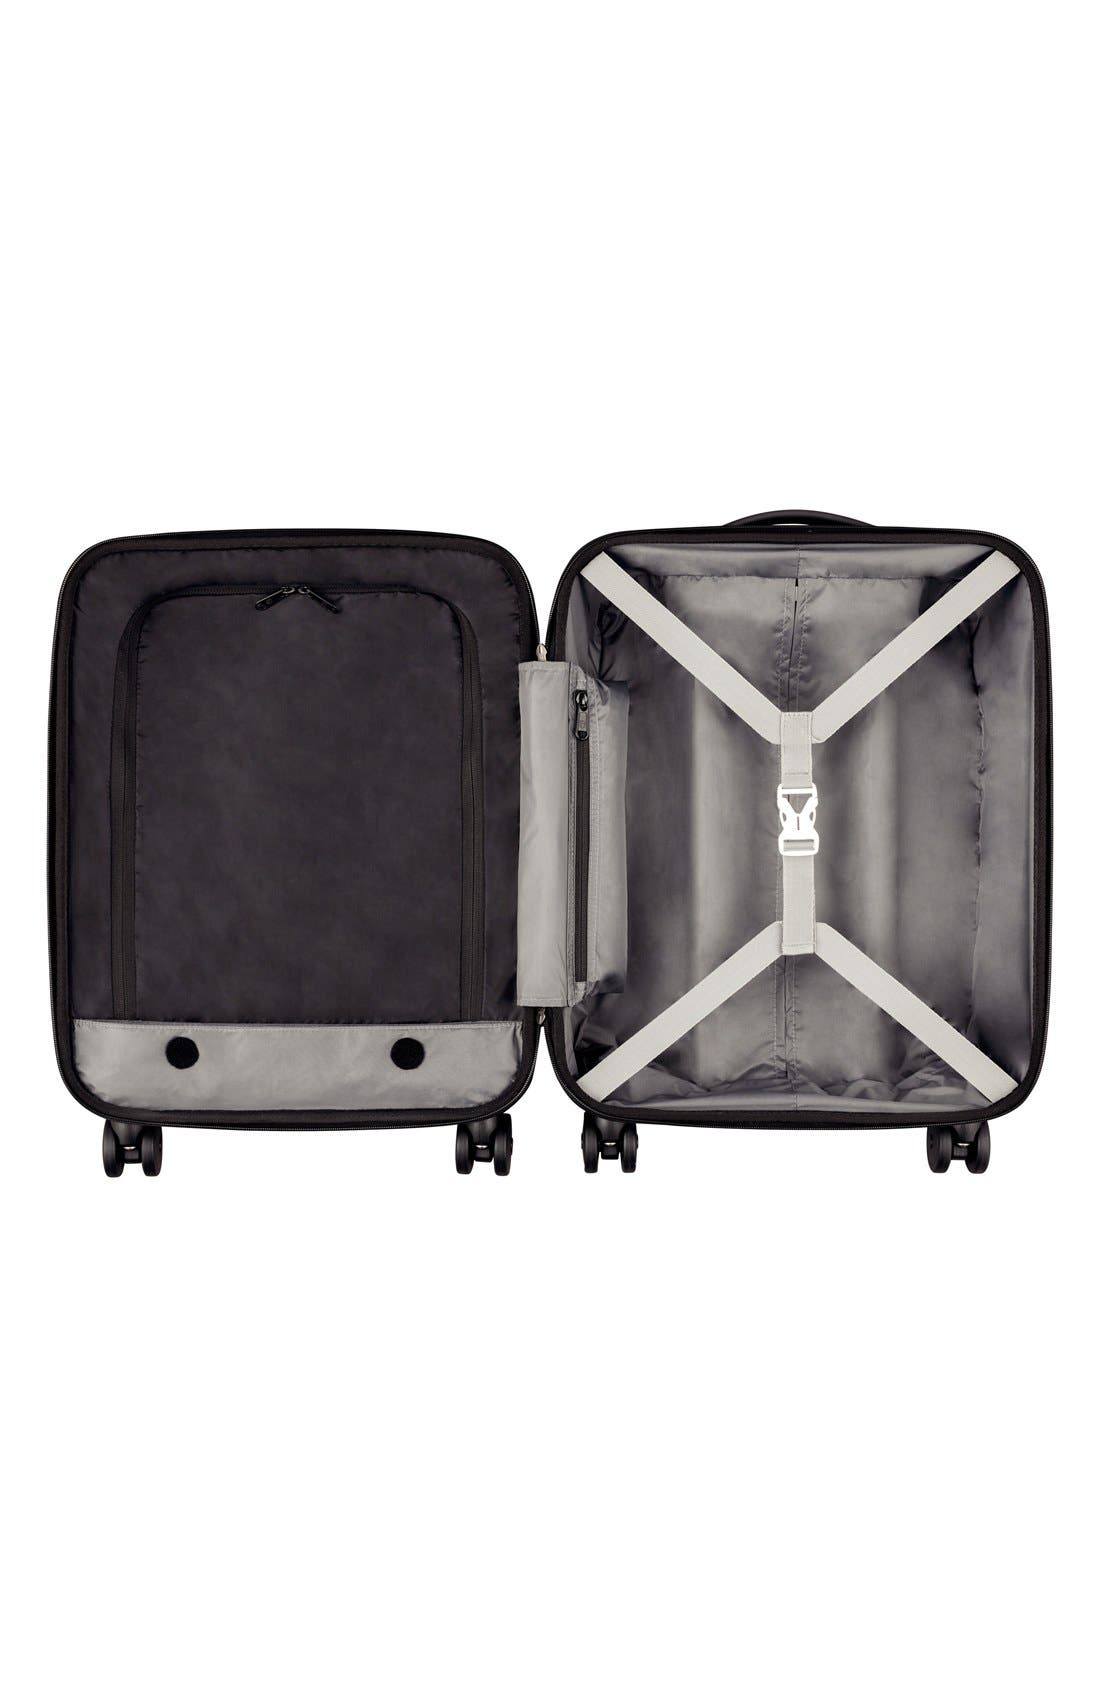 Spectra 2.0 Dual Access Global Hard Sided Rolling 22-Inch Carry-On,                             Alternate thumbnail 2, color,                             Black